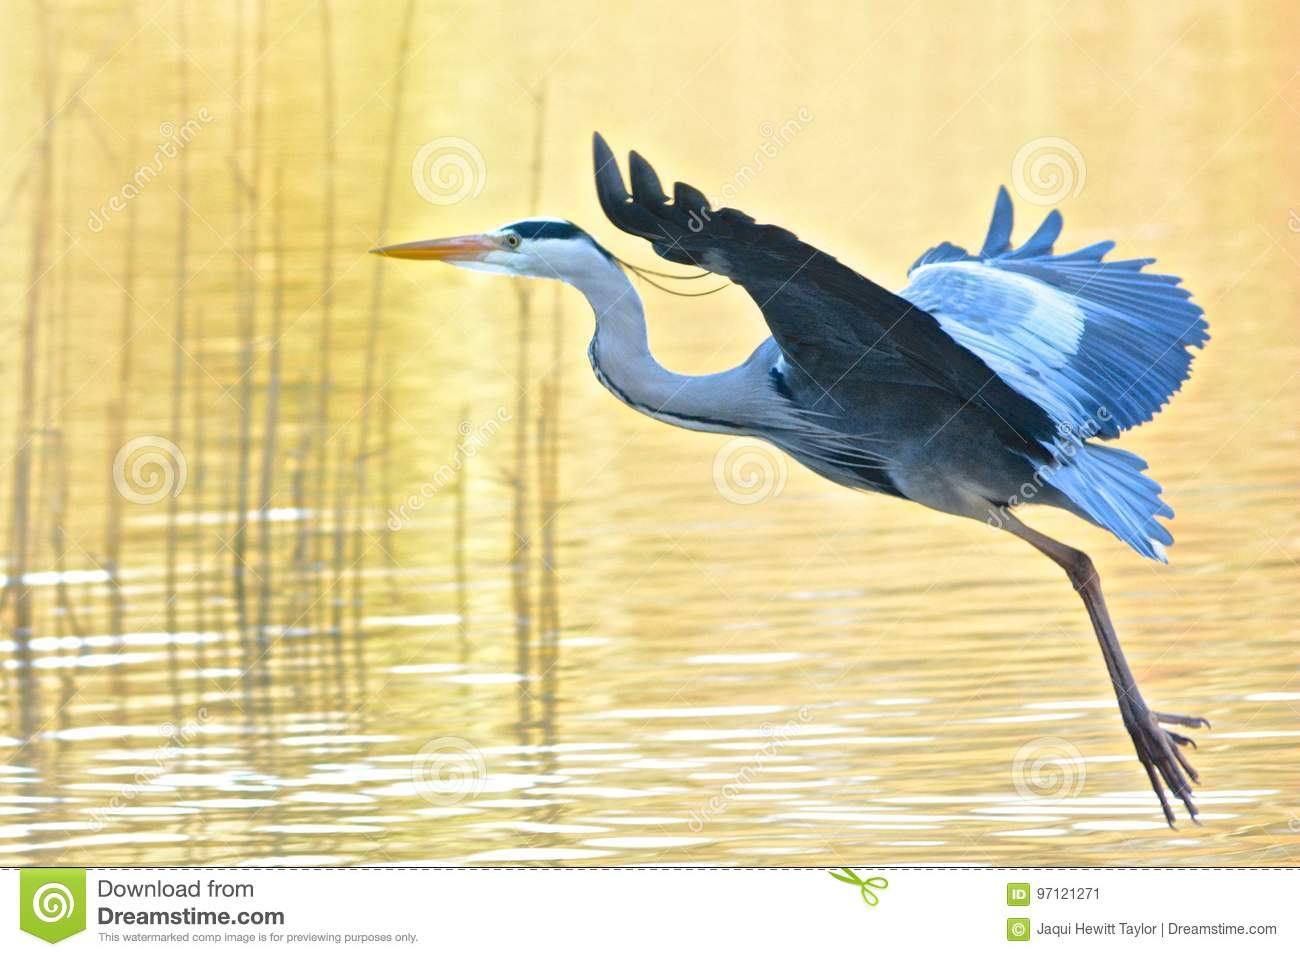 A heron taking off